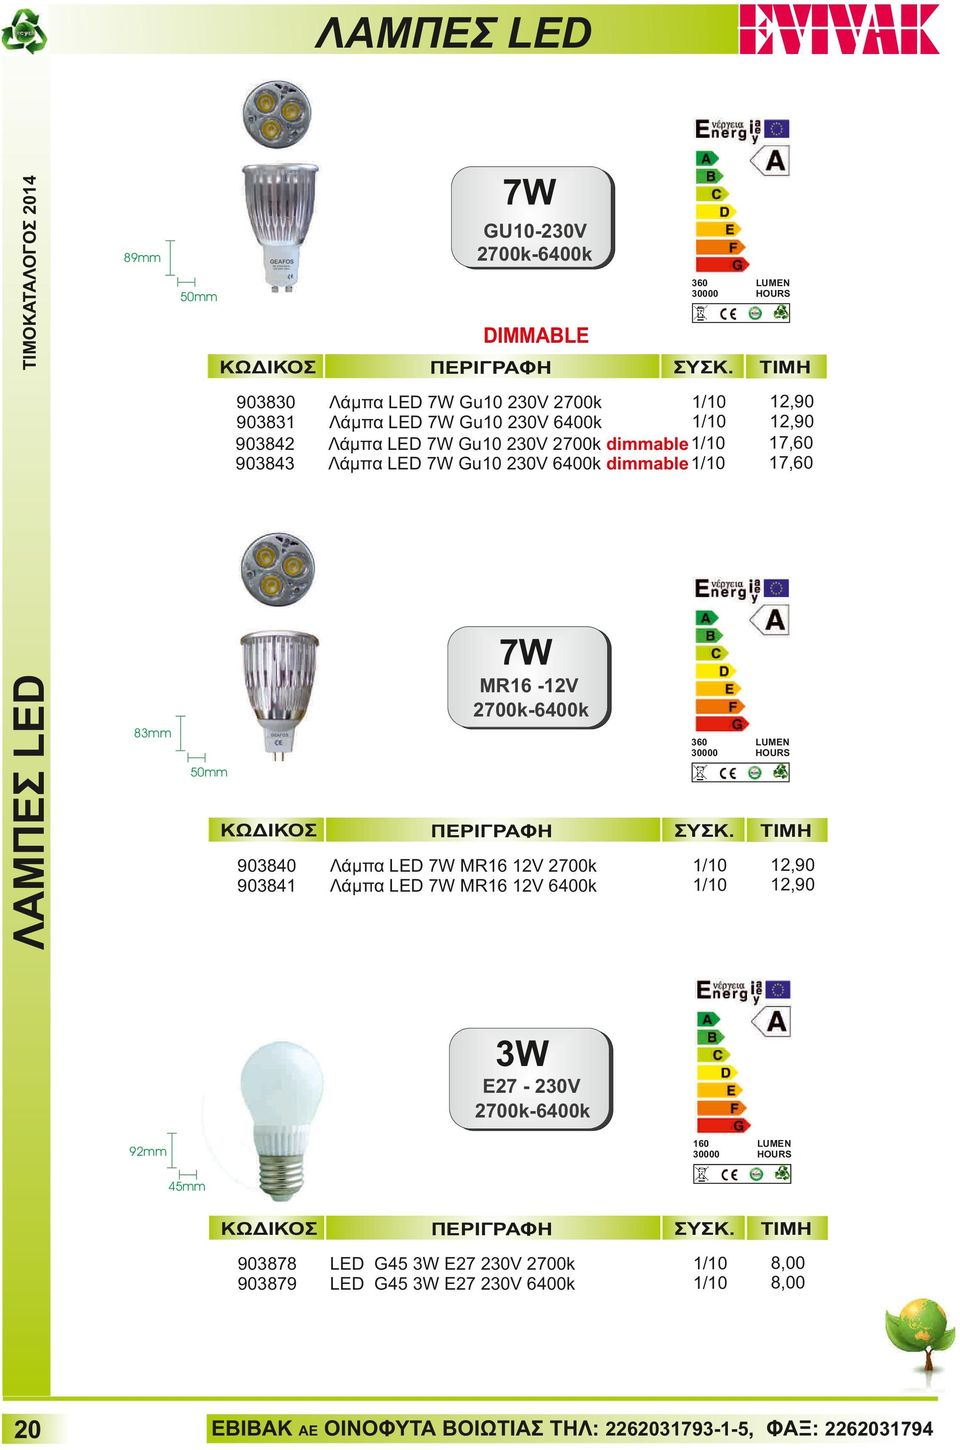 LED 7W MR16-12V 2700k-6400k 83mm ECOFOS 7W 2700K GU10 GEAFOS 220-240V 50Hz 360 30000 50mm 903840 903841 Λάμπα LED 7W MR16 12V 2700k Λάμπα LED 7W